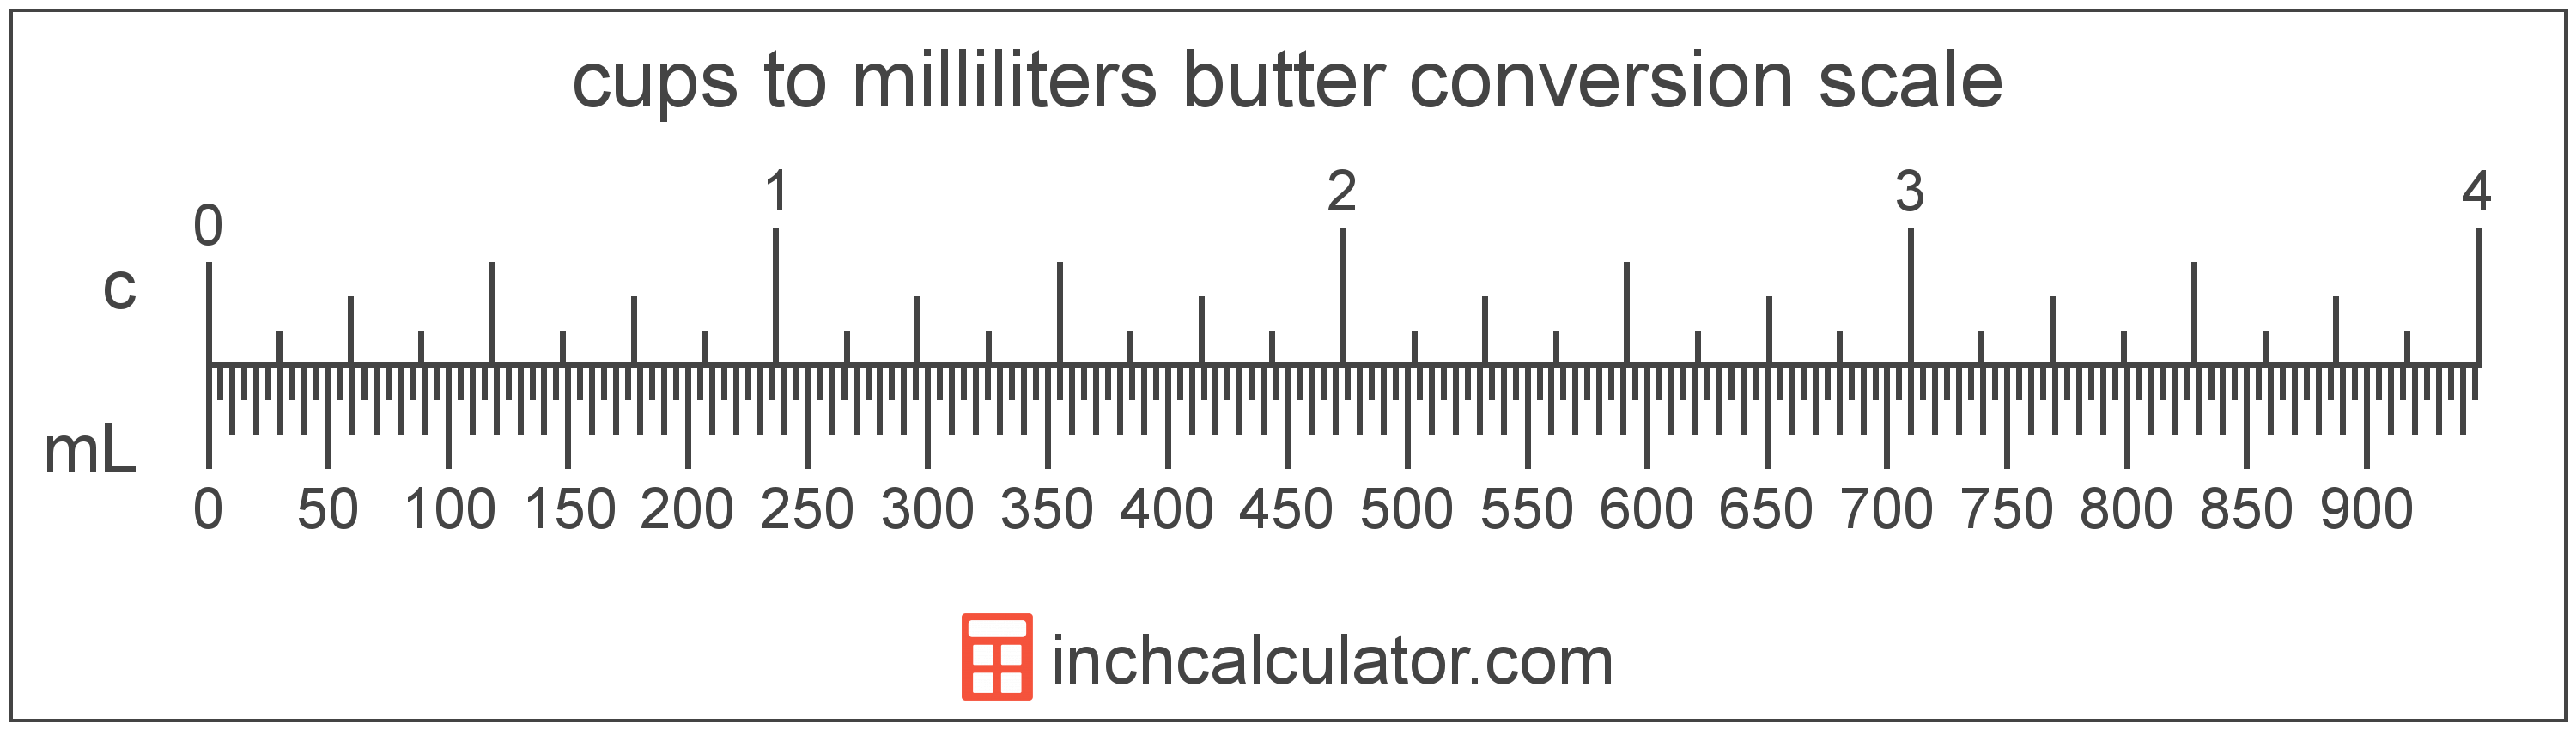 conversion scale showing cups and equivalent milliliters butter values